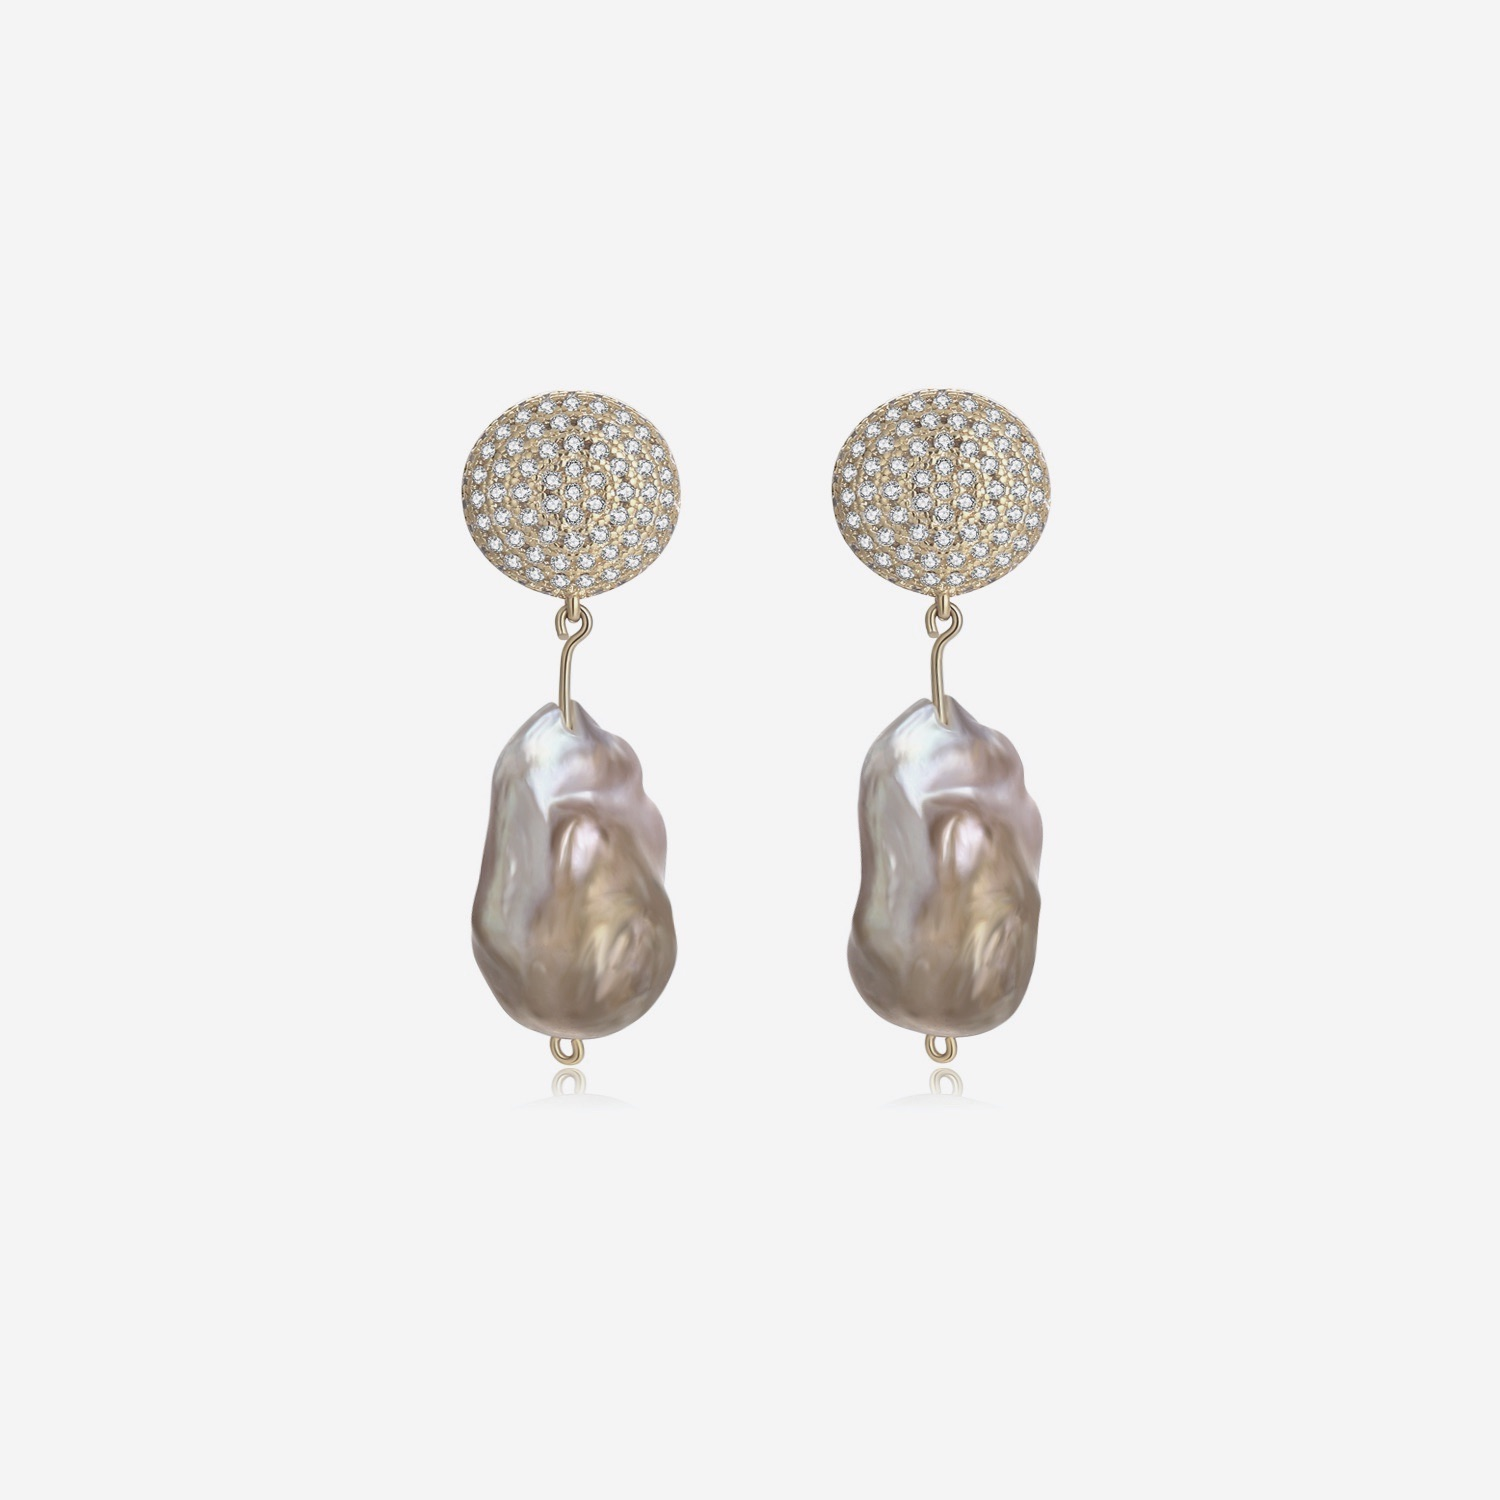 Viv Earrings - Gold by Emili on curated-crowd.com